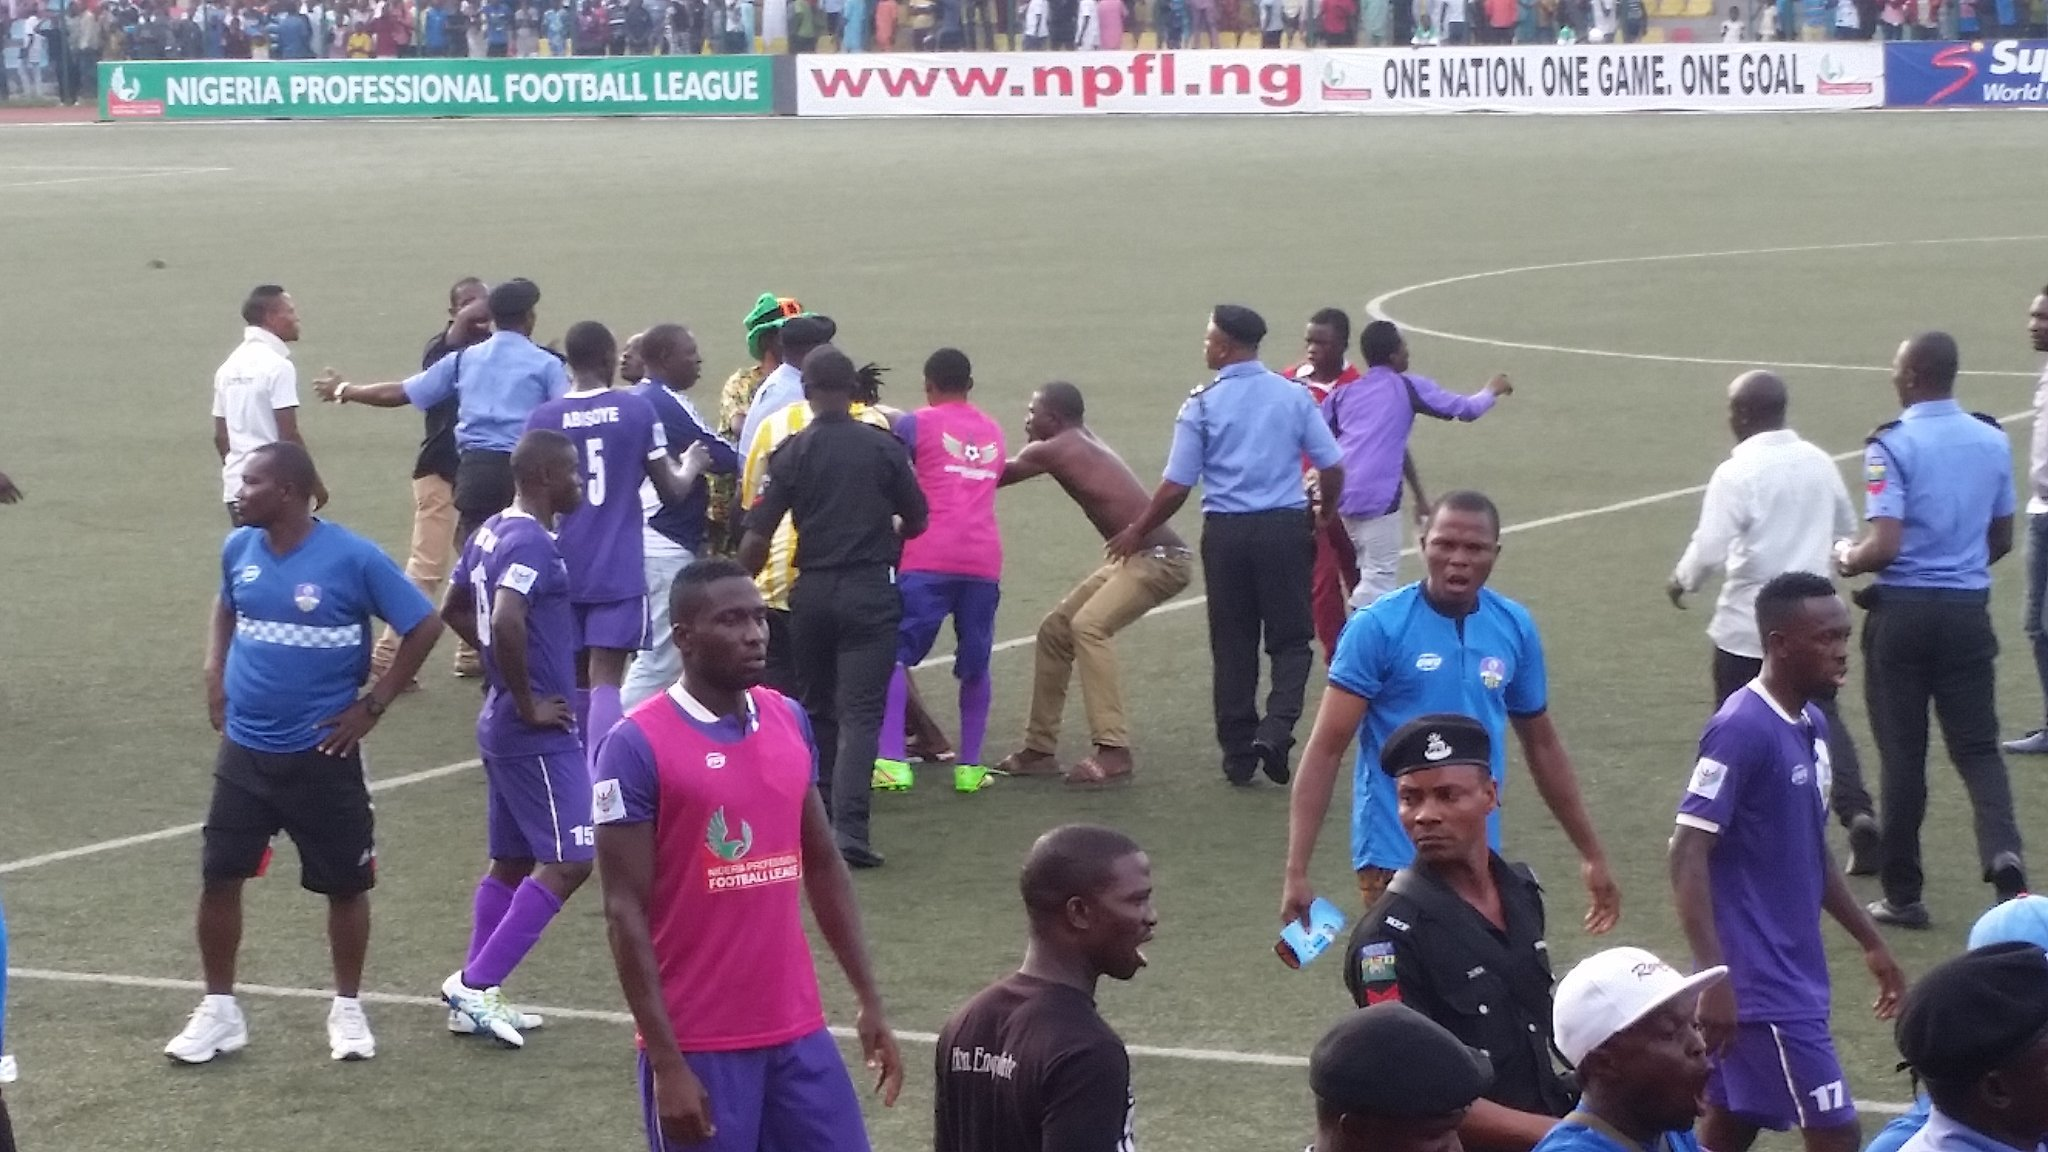 NPFL: Thugs Mar 3SC's Win Over MFM; Wikki Extend Lead